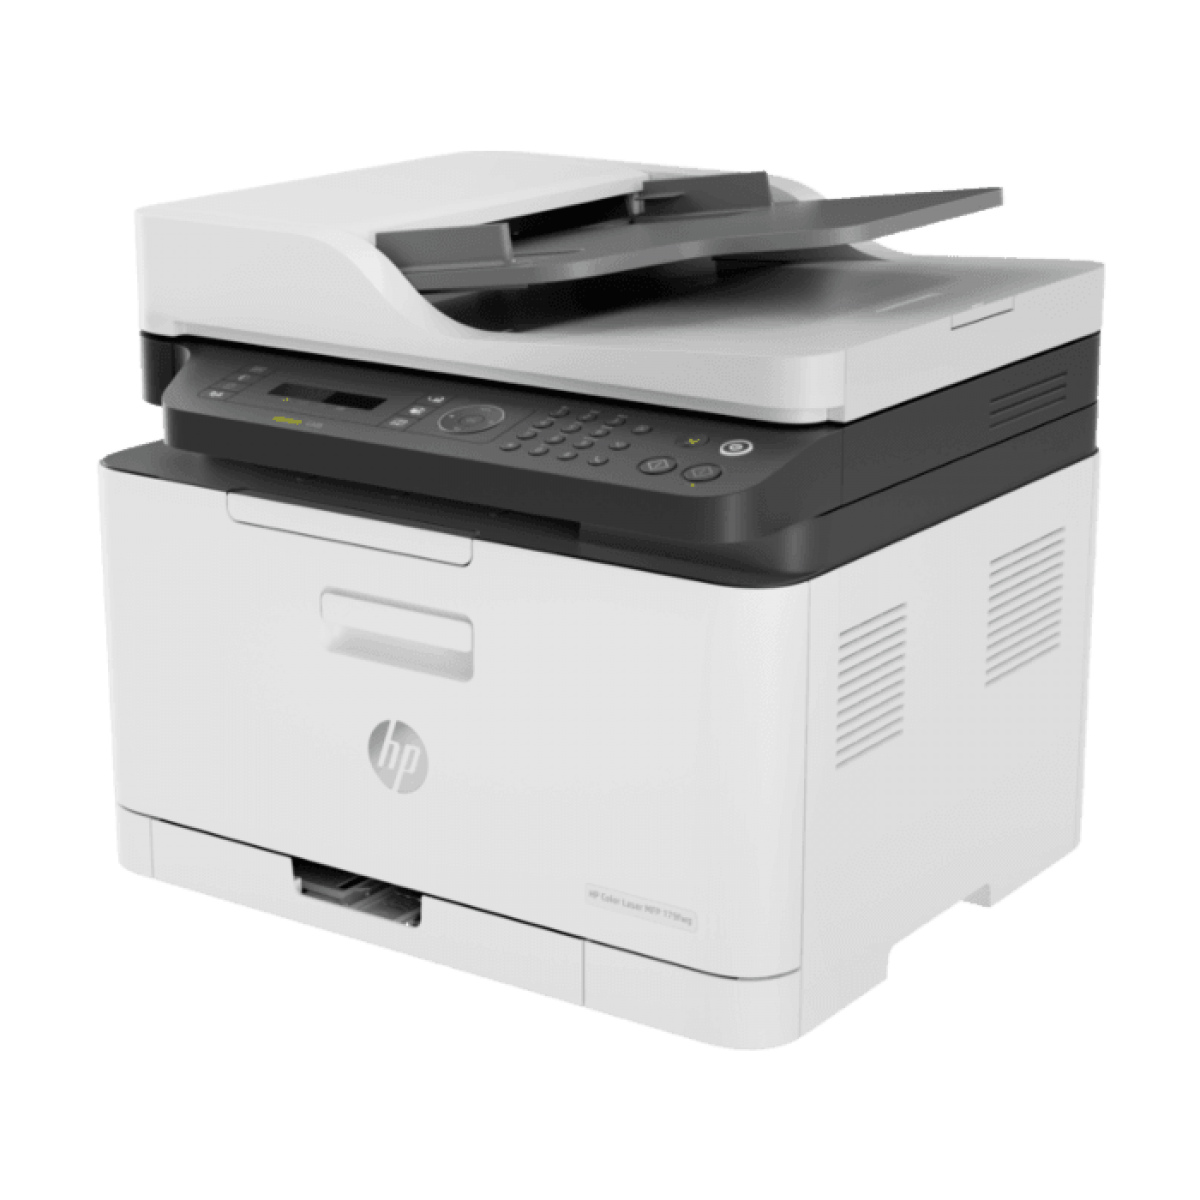 HP Color Laser MFP 179fnw Color Laser MFP, New (4ZB97A)